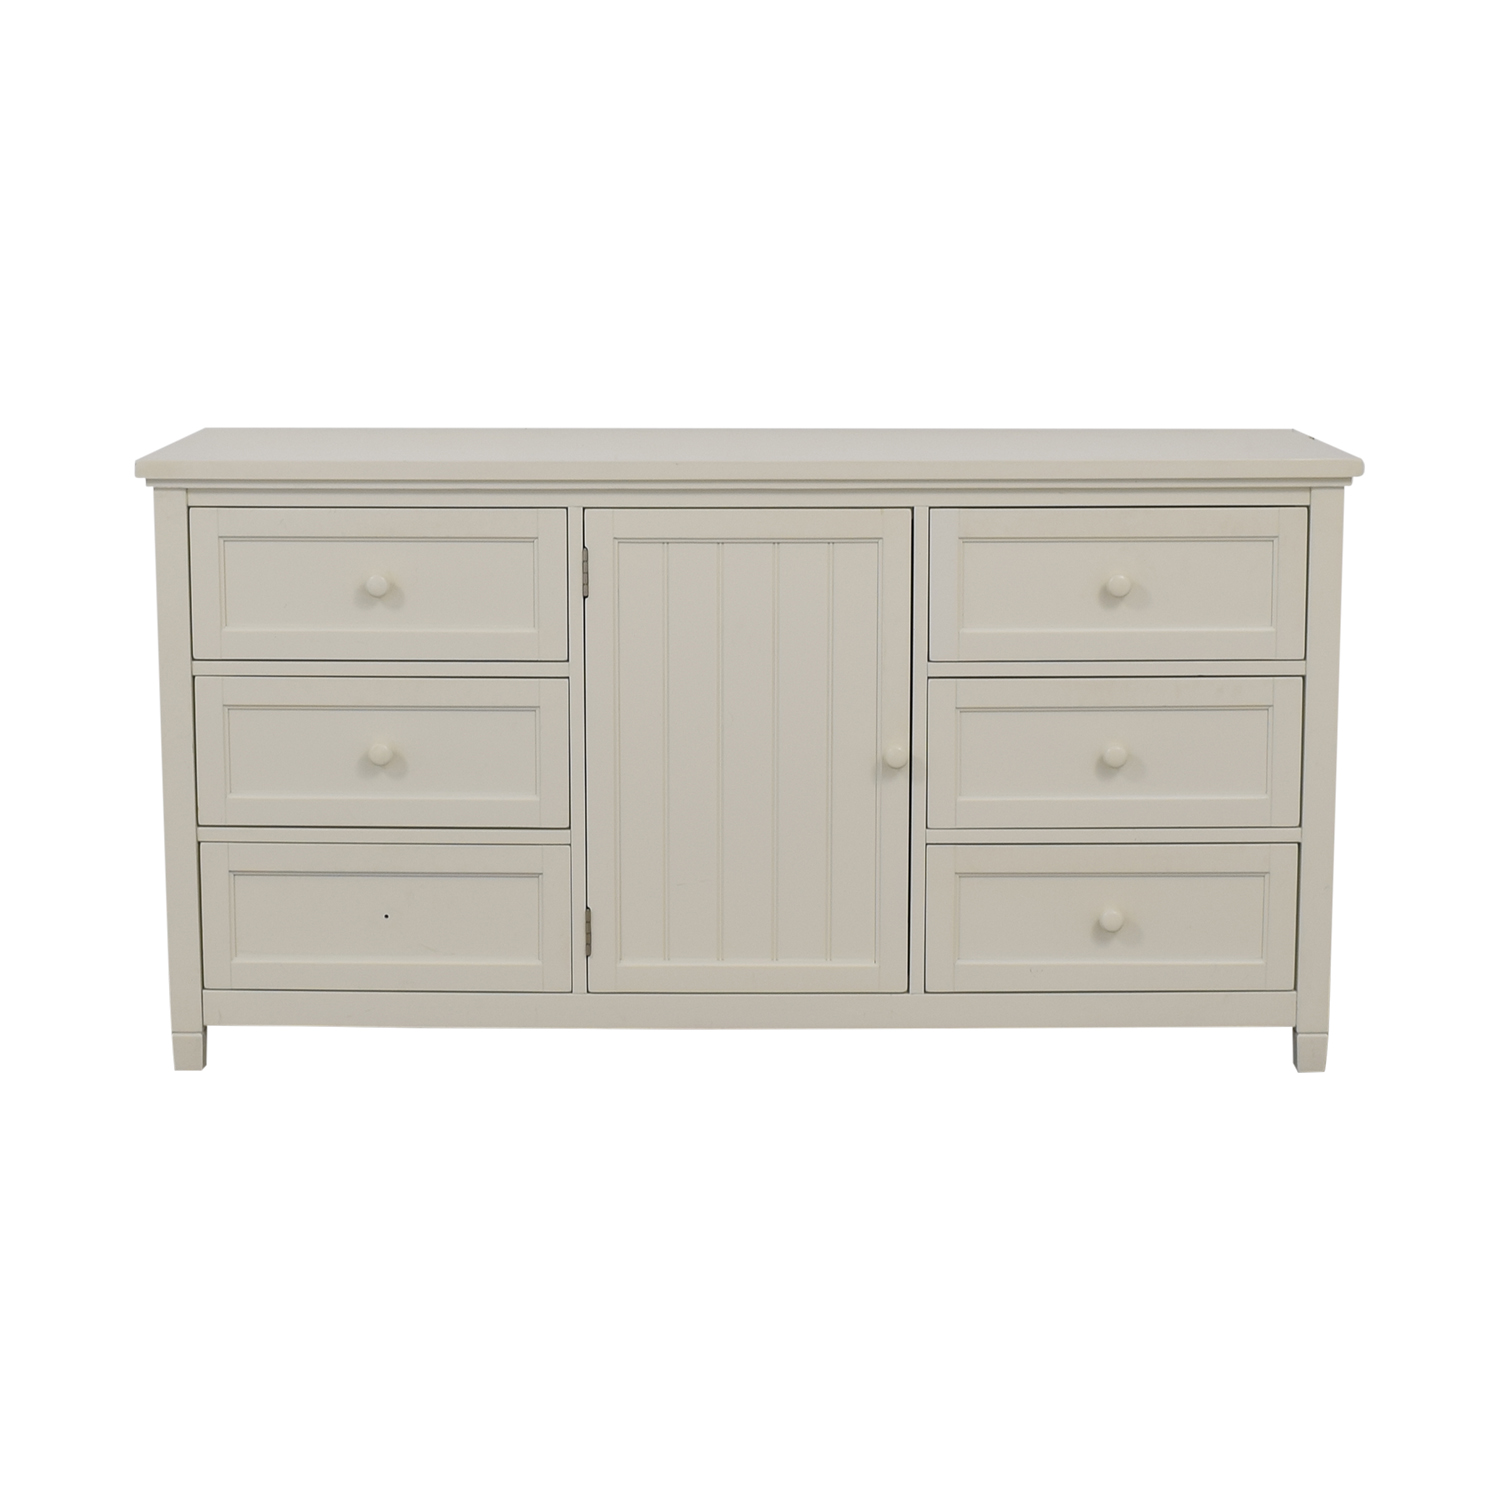 buy Pottery Barn Pottery Barn White Six-Drawer Beadboard Dresser online